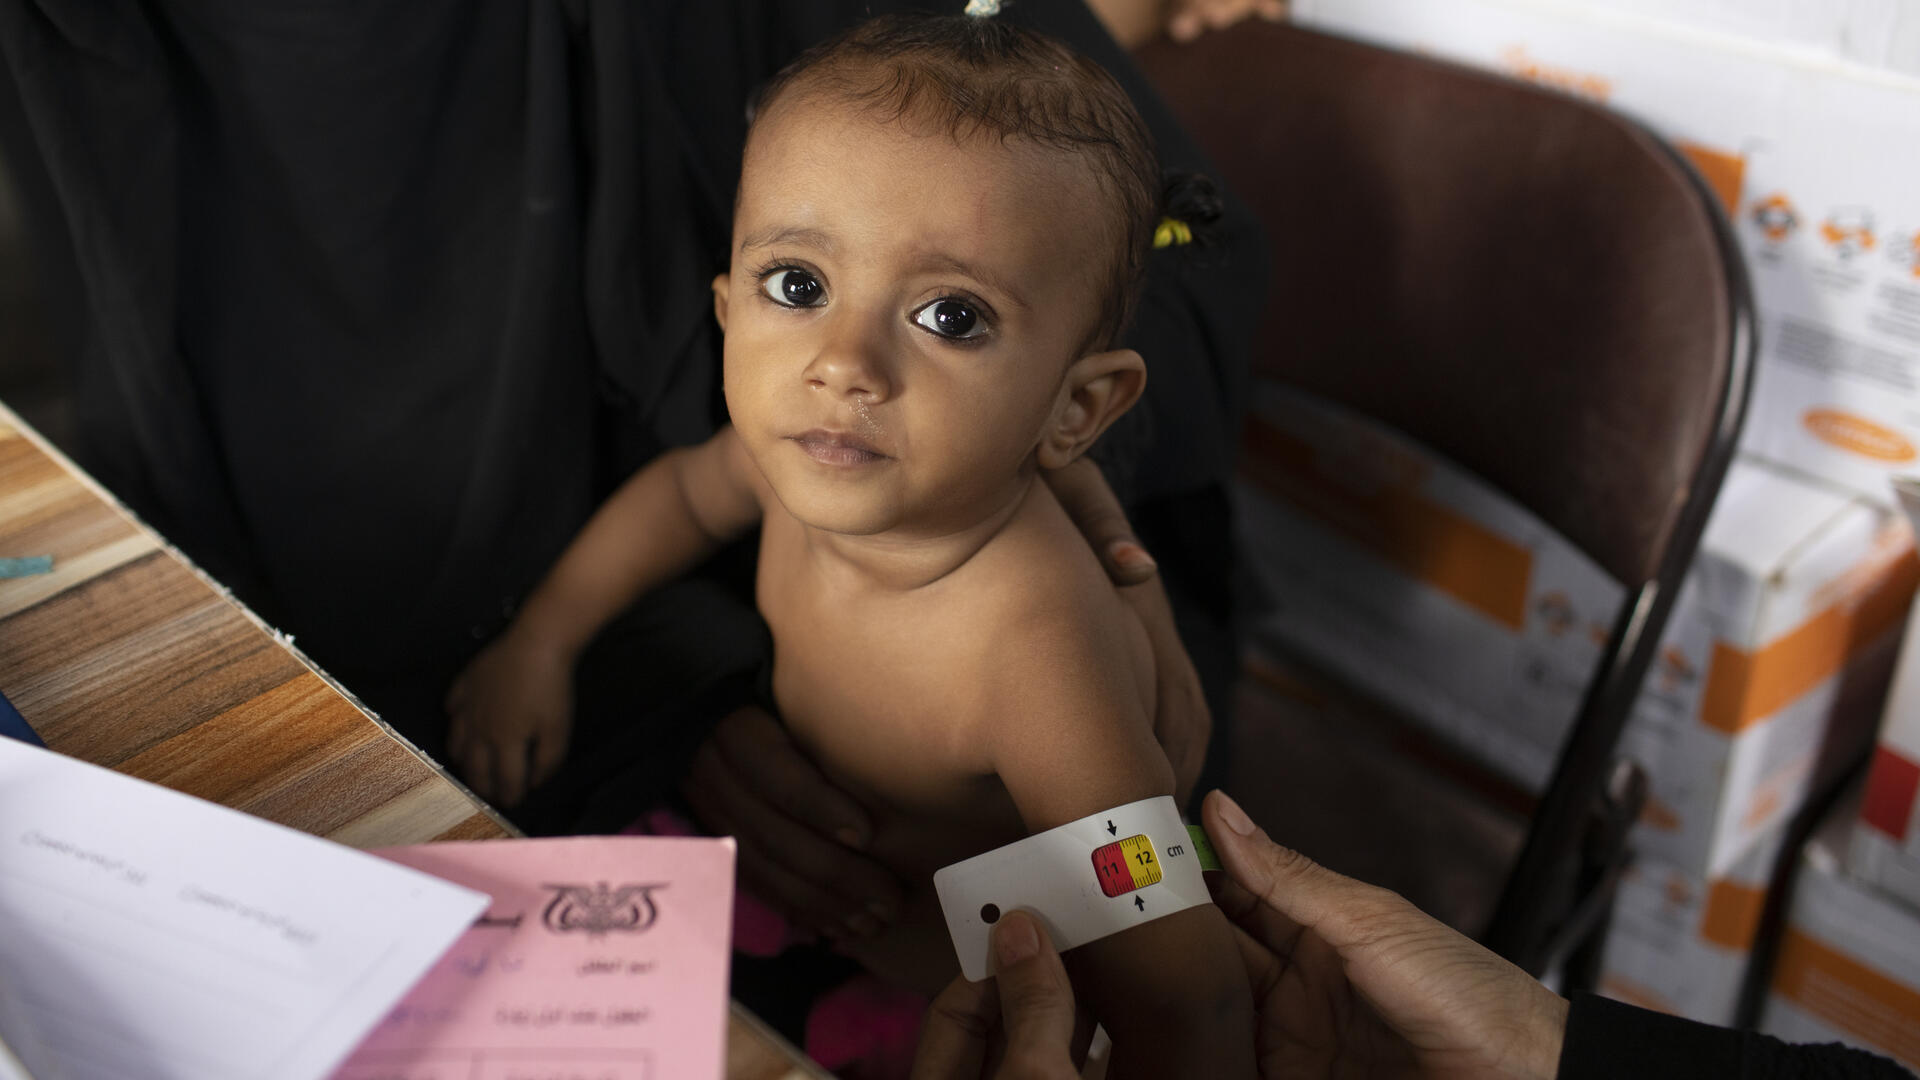 A small child being examined at an IRC clinic in Yemen has her upper arm measured with a MUAC tape, which shows she may be acutely malnourished.